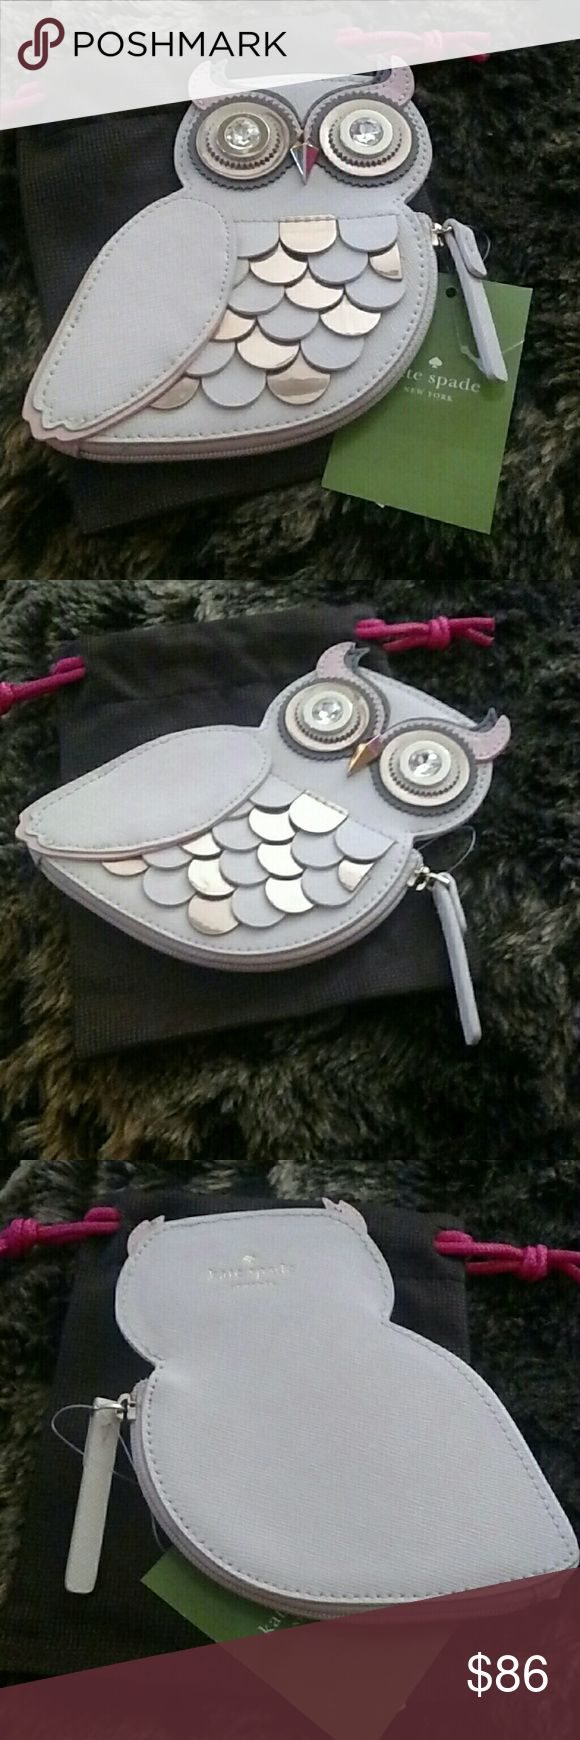 """♠♠🆕Kate Spade """"Blaze A Trail"""" Owl Coin Purse♠♠ Kate Spade Satin And Shimmering paillettes To Craft This Sweet Coin Purse In The Guise Of An Owl. It's A Real Hoot And Sure To Be A Conversation Starter. Part Of Blaze A Trail Collection. Colors Are Cream, Pink And Gray. Made Of Satin With Sequin Embroidery And Smooth Metallic Leather Trim. 14k Light Gold Plated Hardware. Custom Woven Caroleena Spade Dot Pink Lining.  5 1/2""""(T) X 4 1/2""""(W). Fast Shipping! kate spade Bags Wallets"""